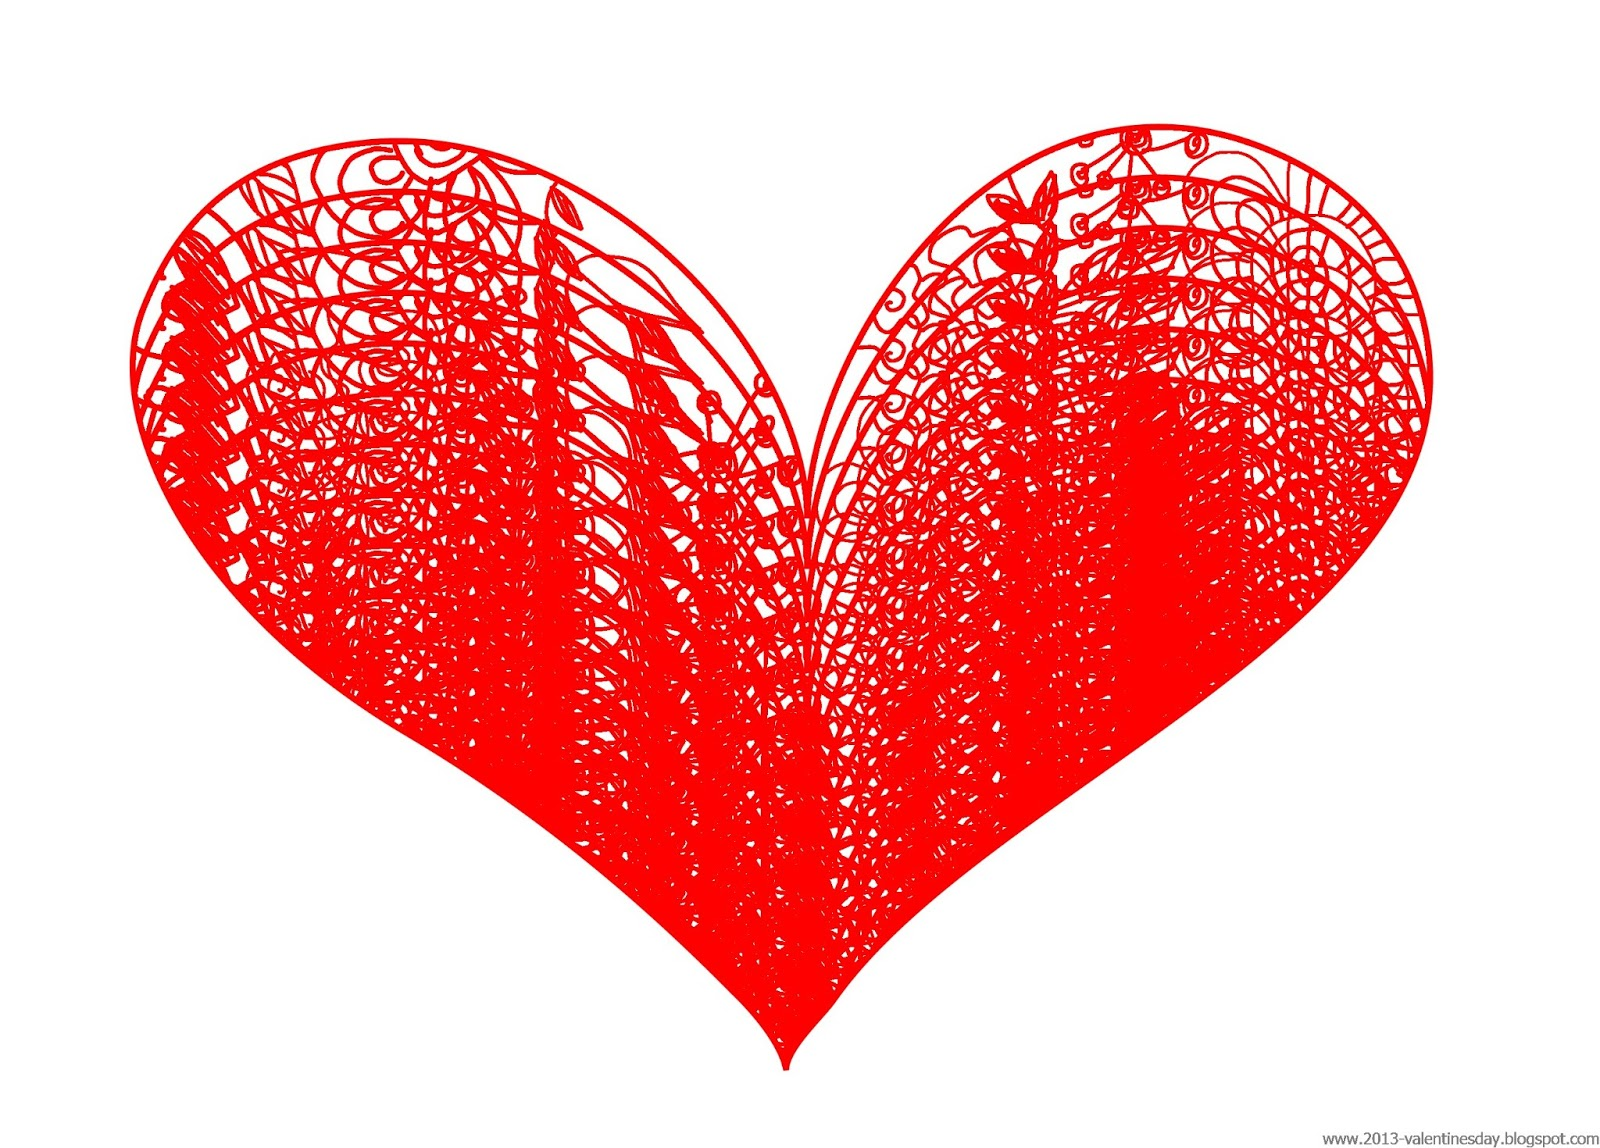 Valentines Day Clip Art Images And Pictures   Online Quotes Gallery